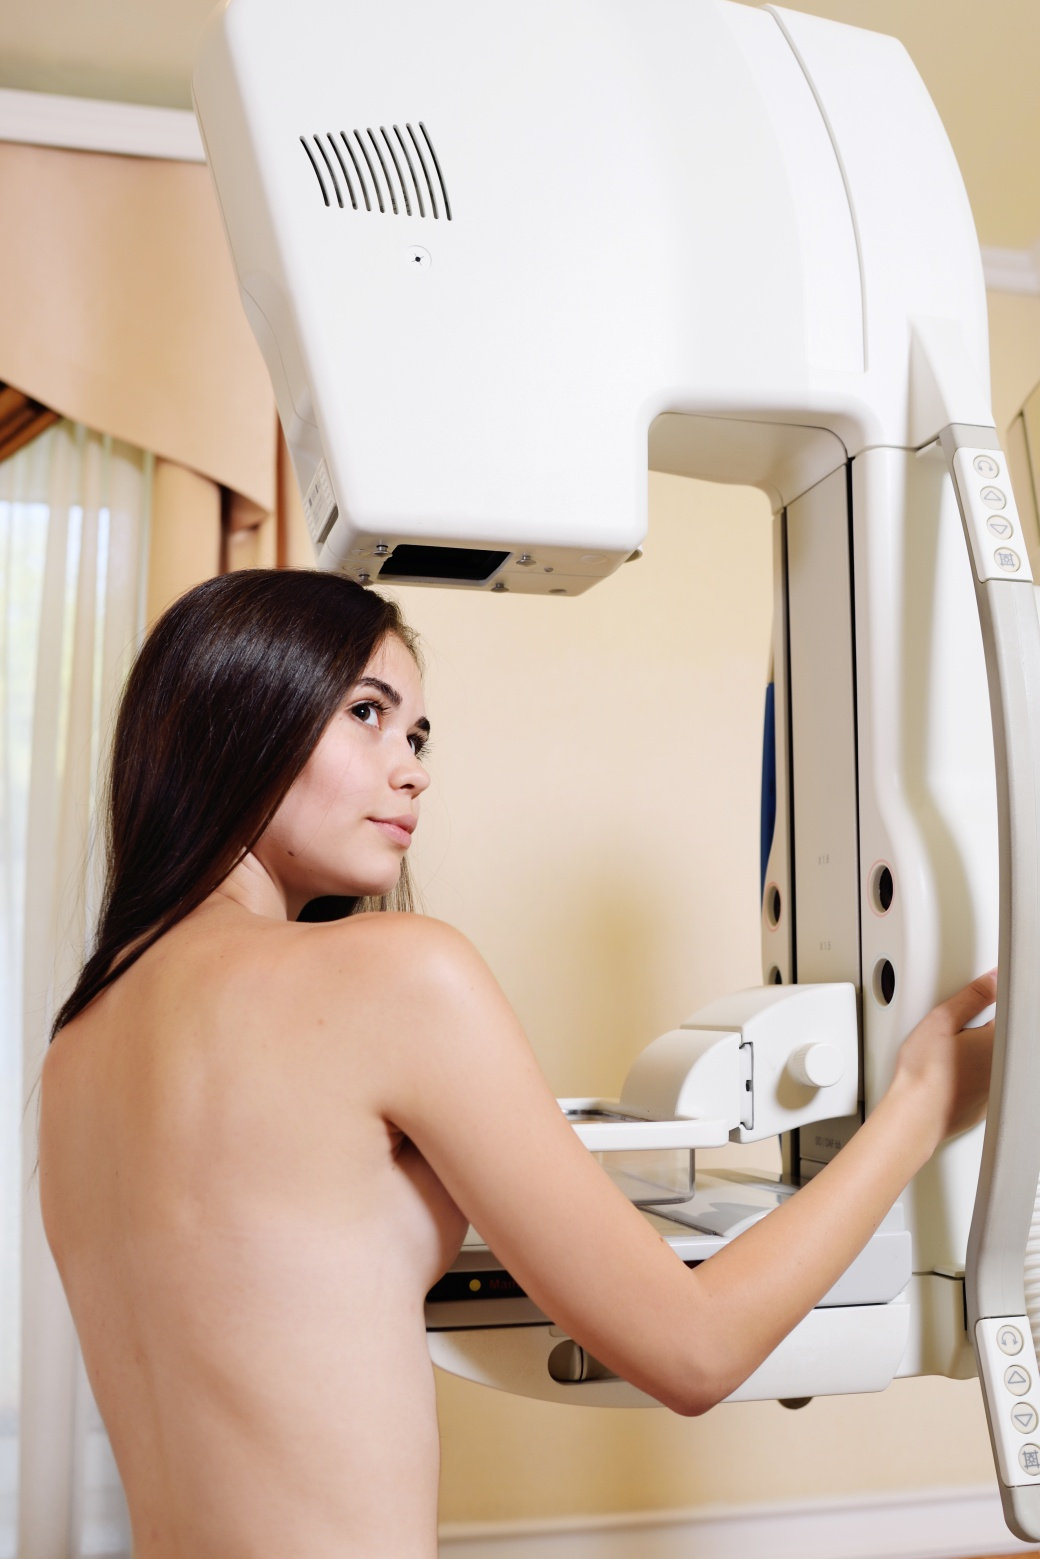 cute young girl on the examination of the breast using the mammography x ray machine, which carry out examination of the breast .